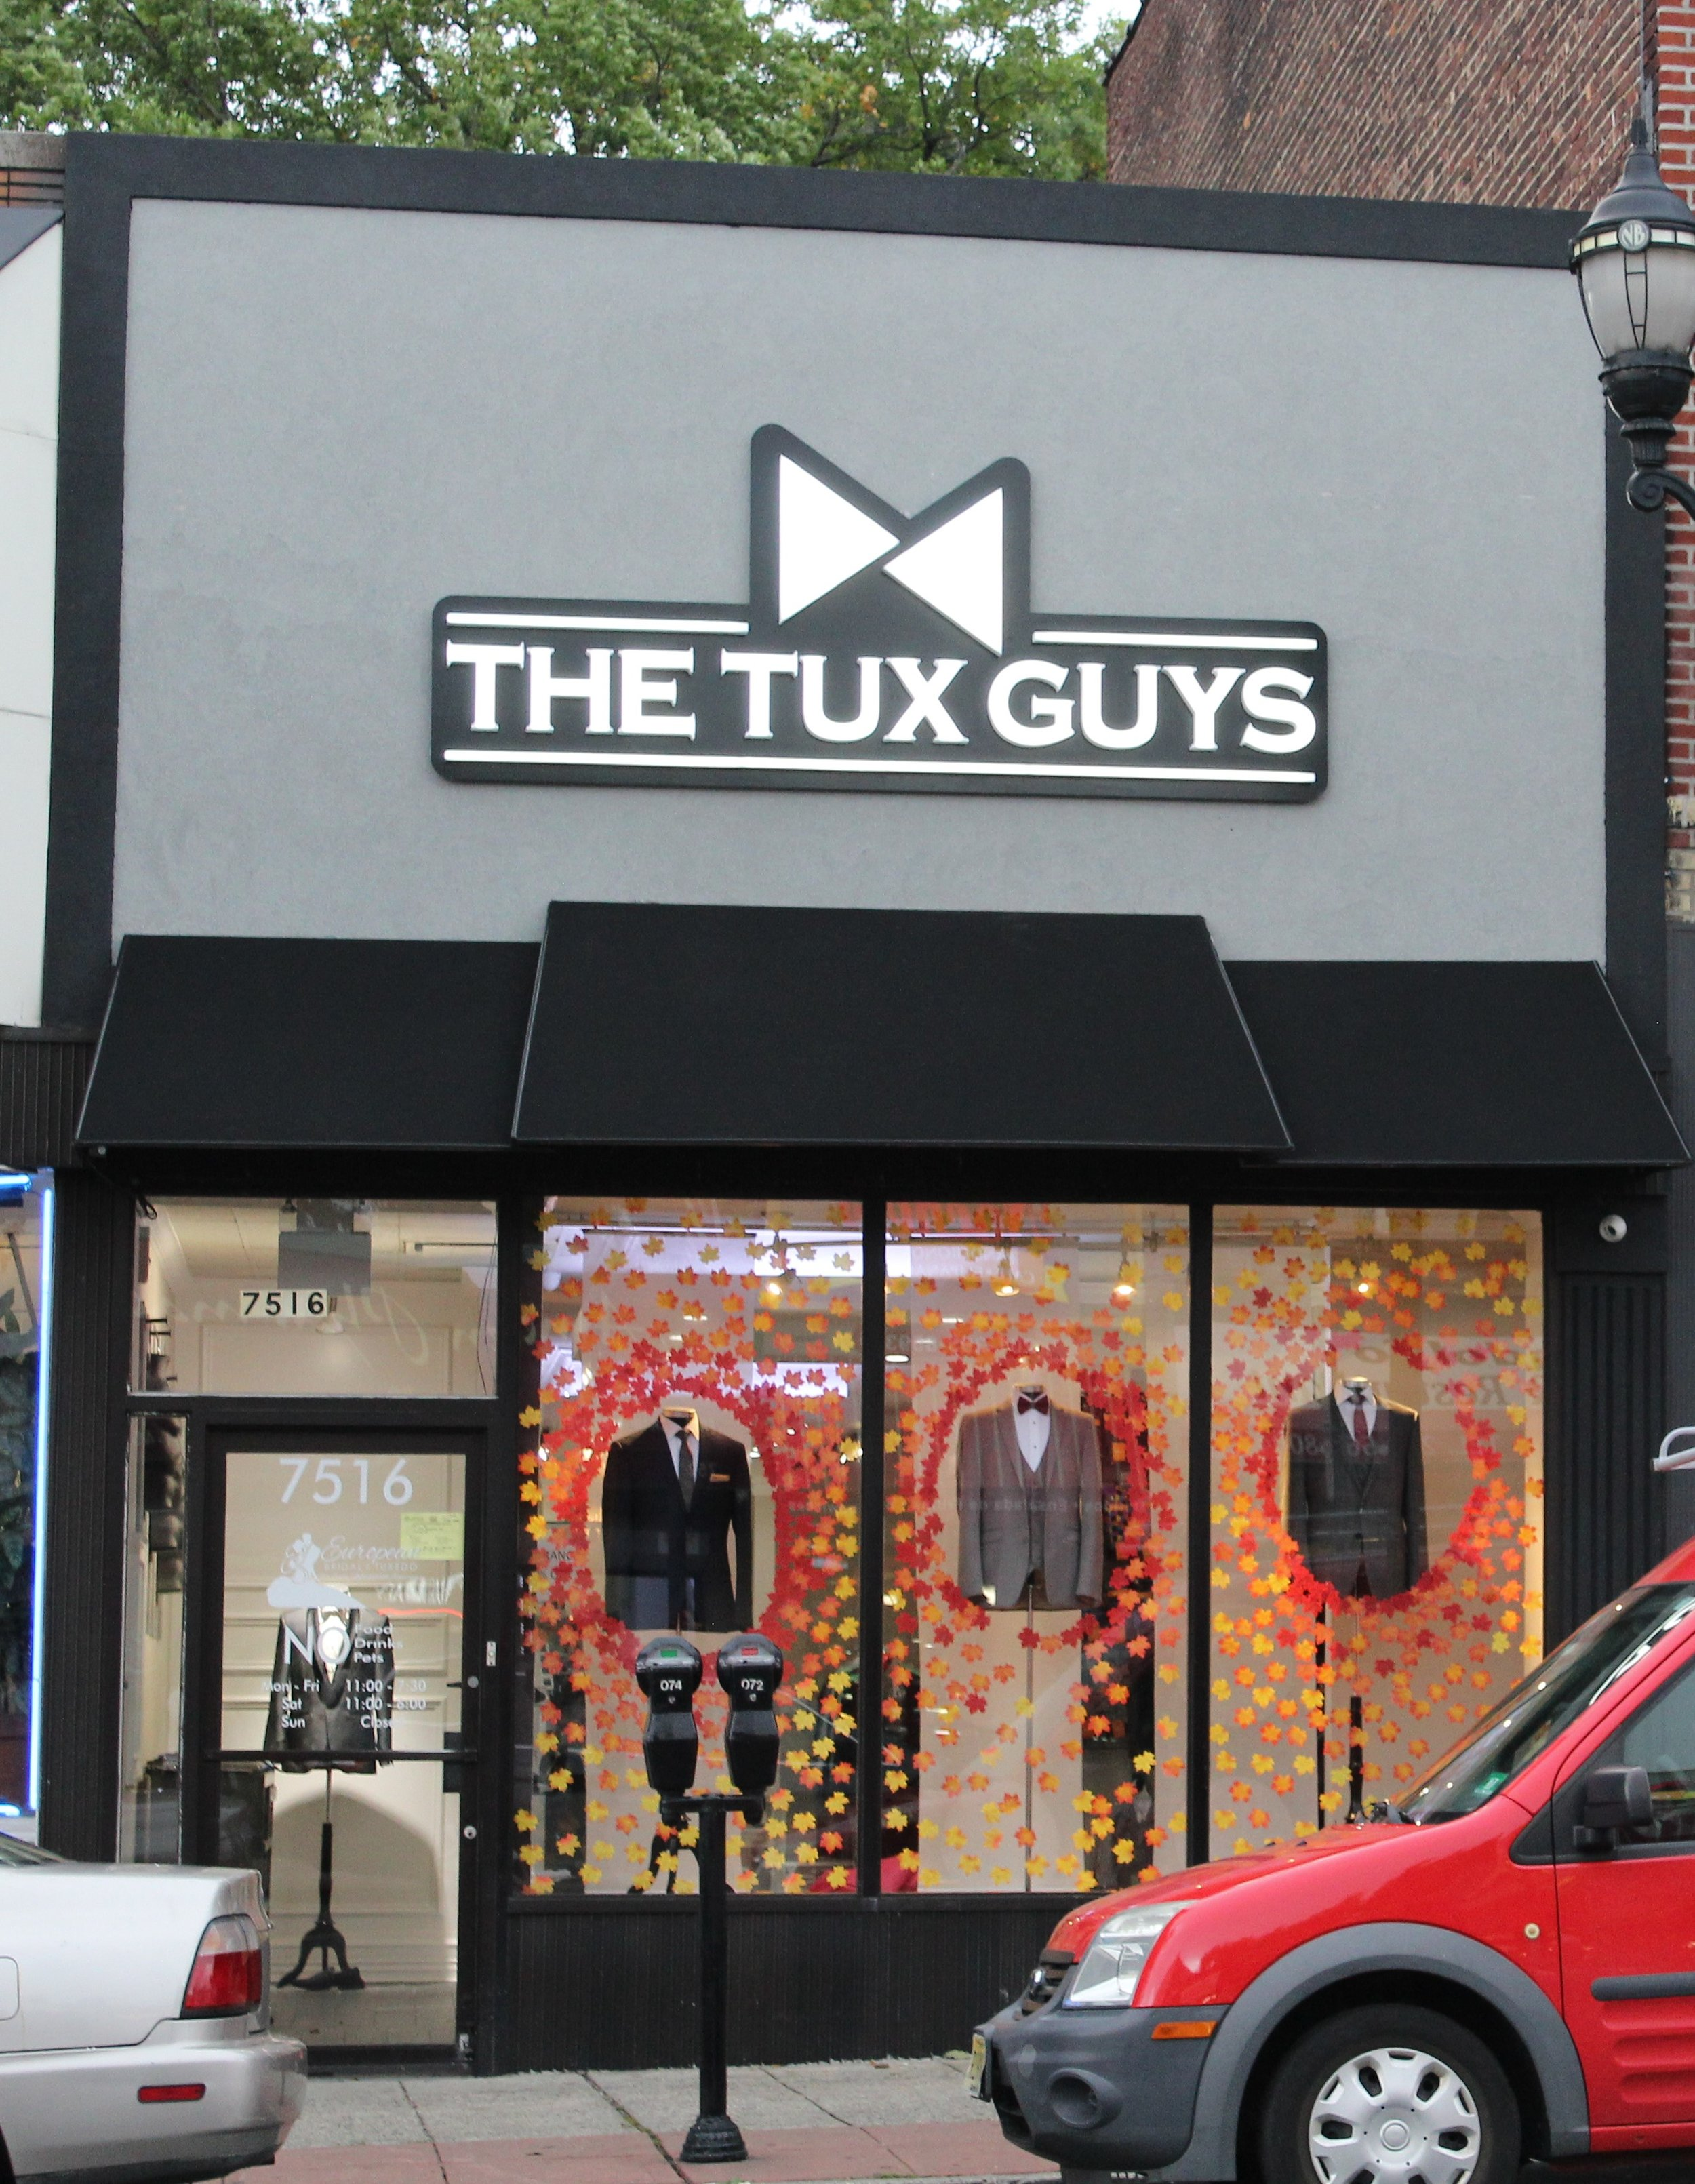 The Tux Guys store front